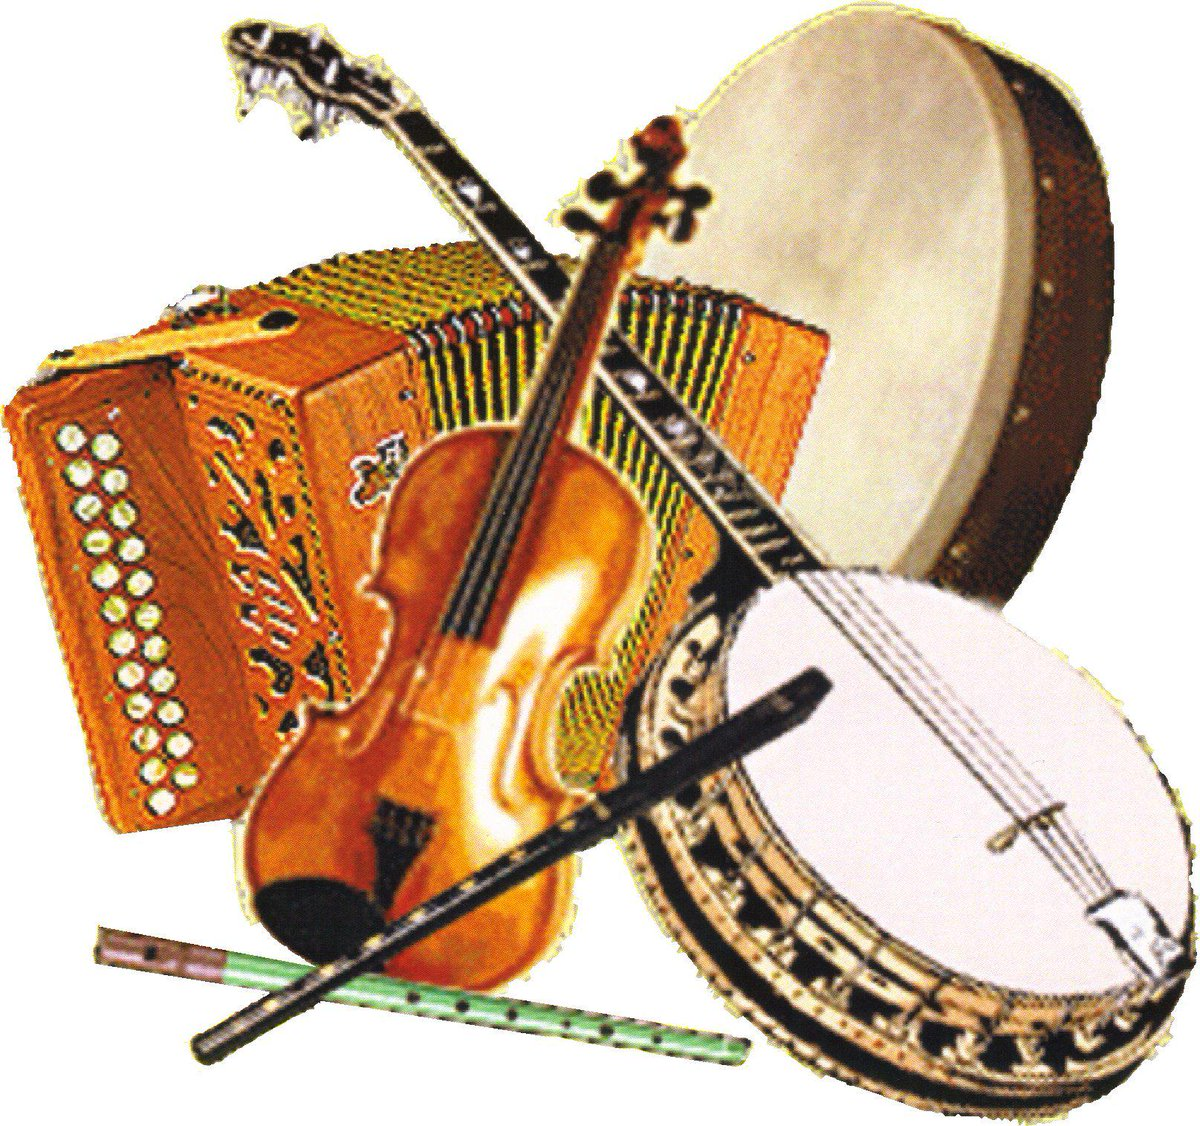 irish music Menu the purpose of this site is to provide links to other irish music sites check out the menu for links to groups, all the various instruments used in traditional irish music including accordion, banjo, concertina, fiddles, flute, uilleann pipes and lots more.